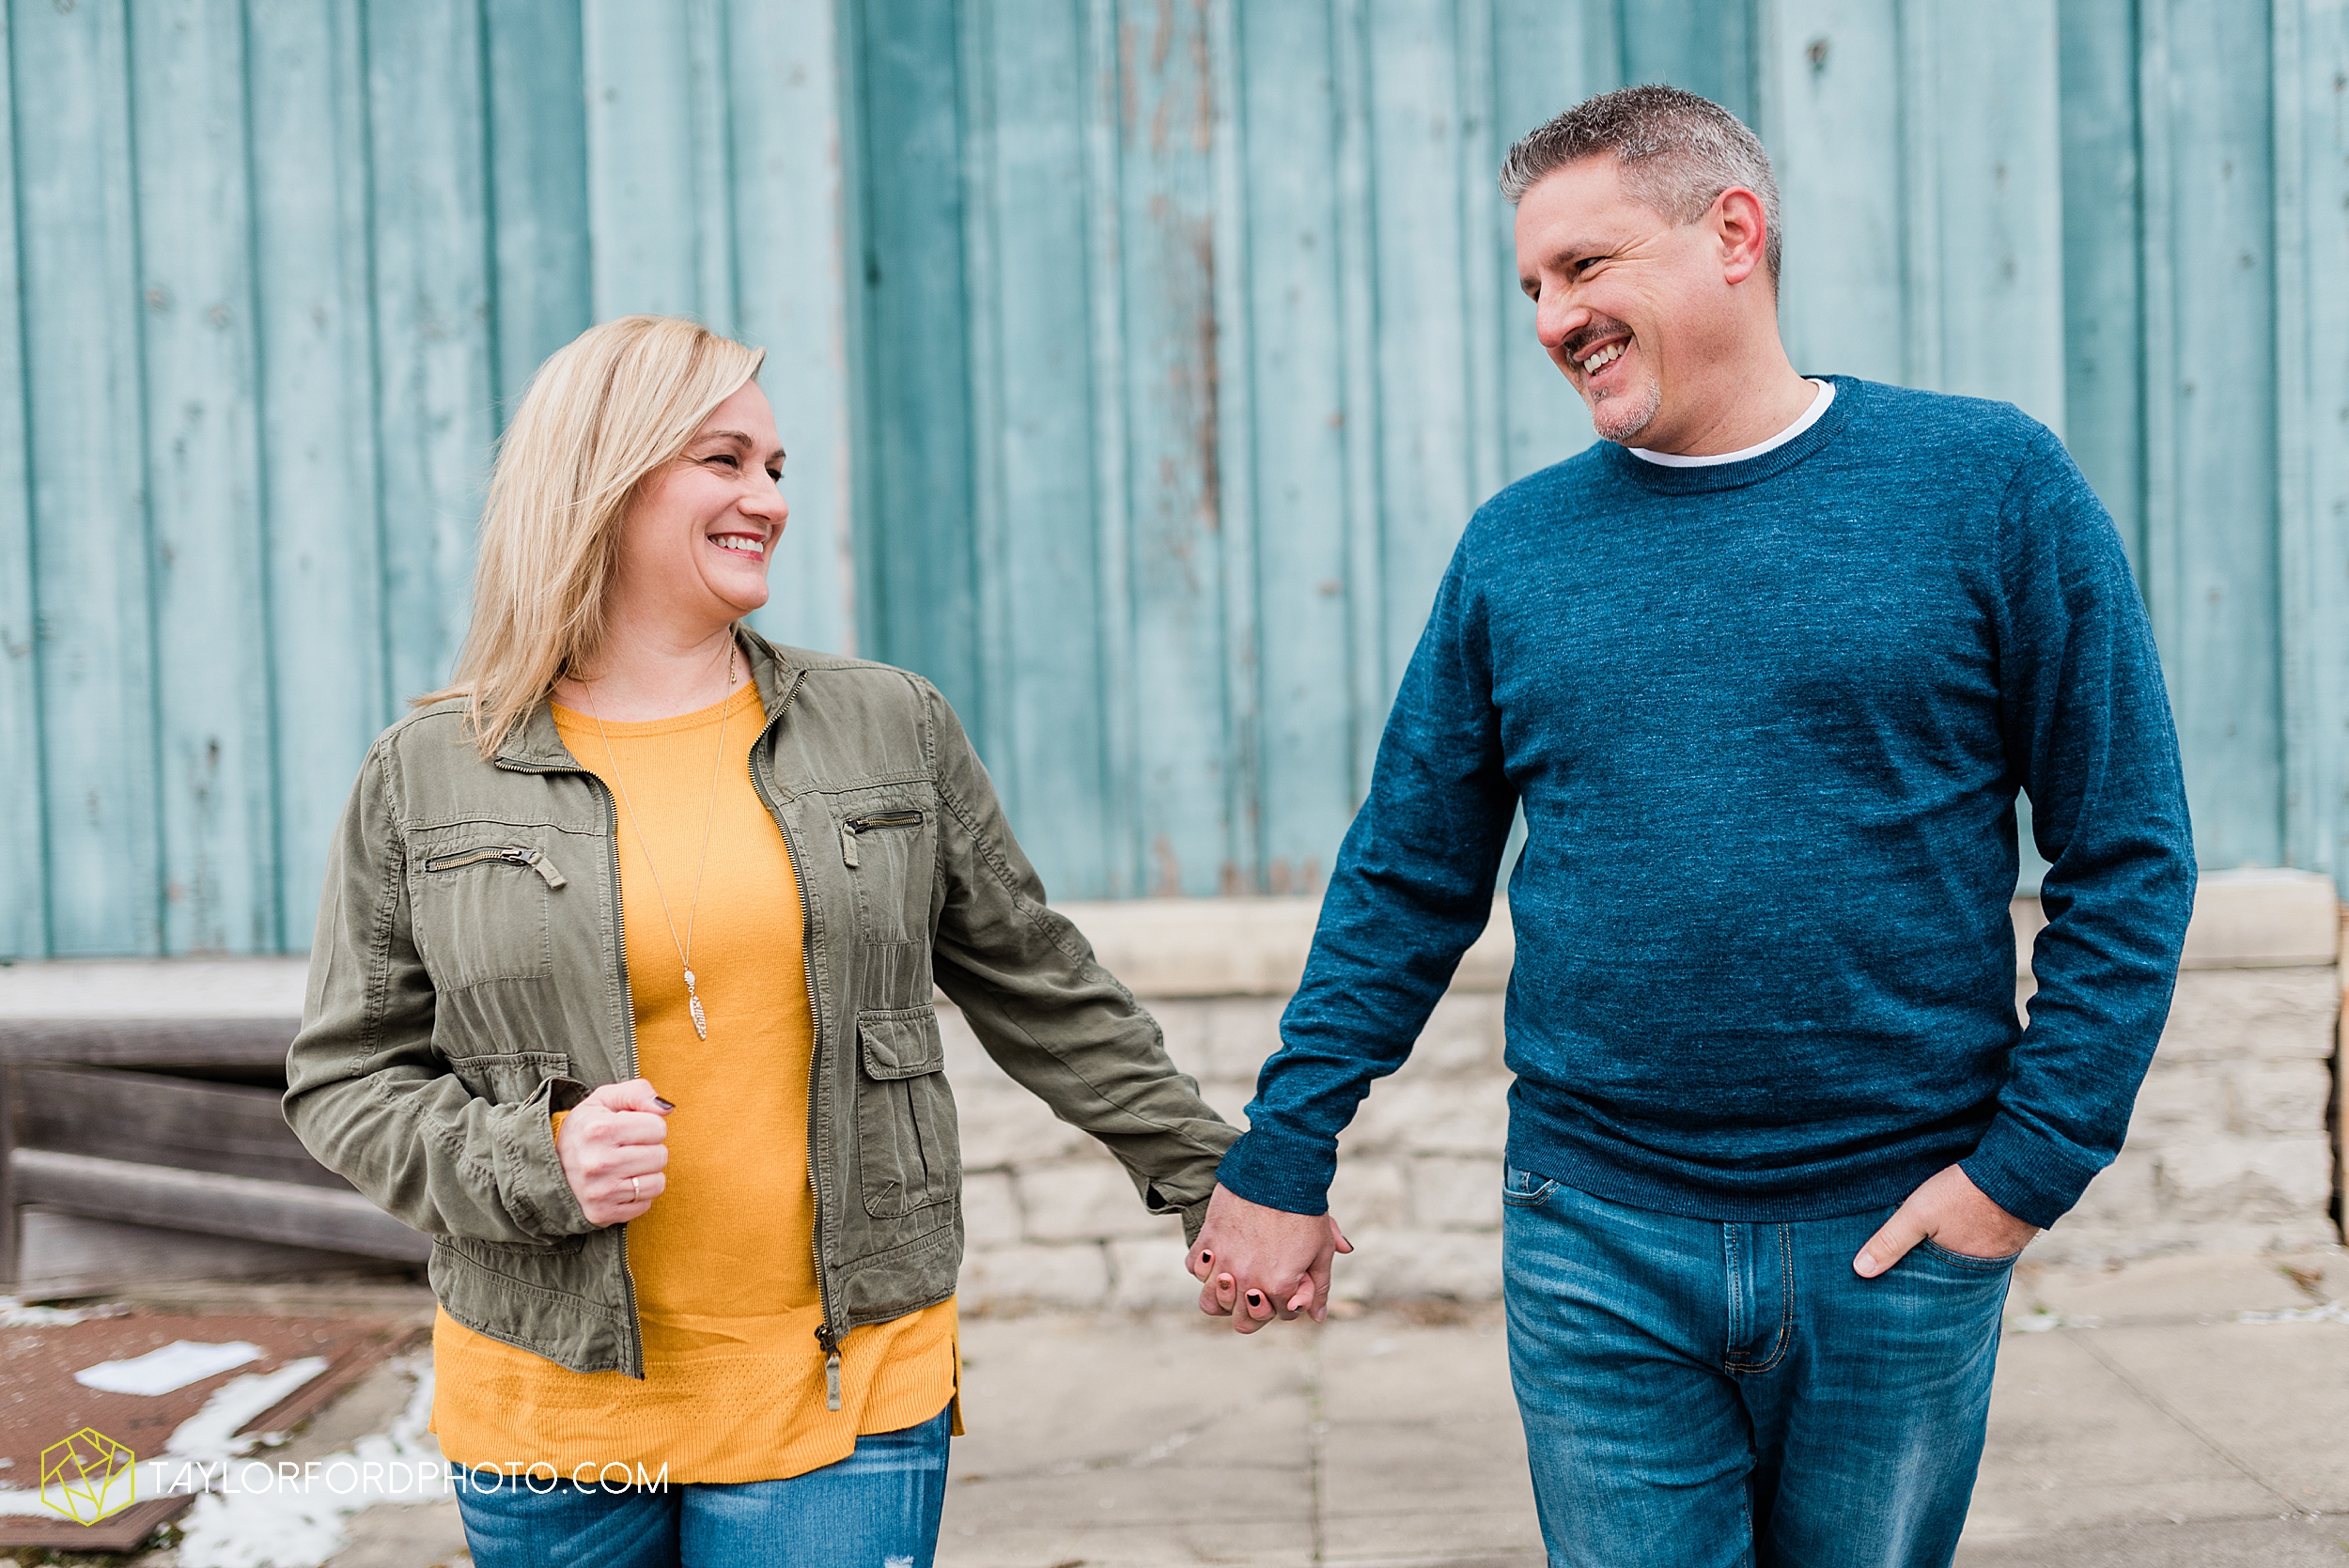 thompson-extended-family-van-wert-ohio-downtown-family-photography-taylor-ford-hirschy-photographer_2083.jpg